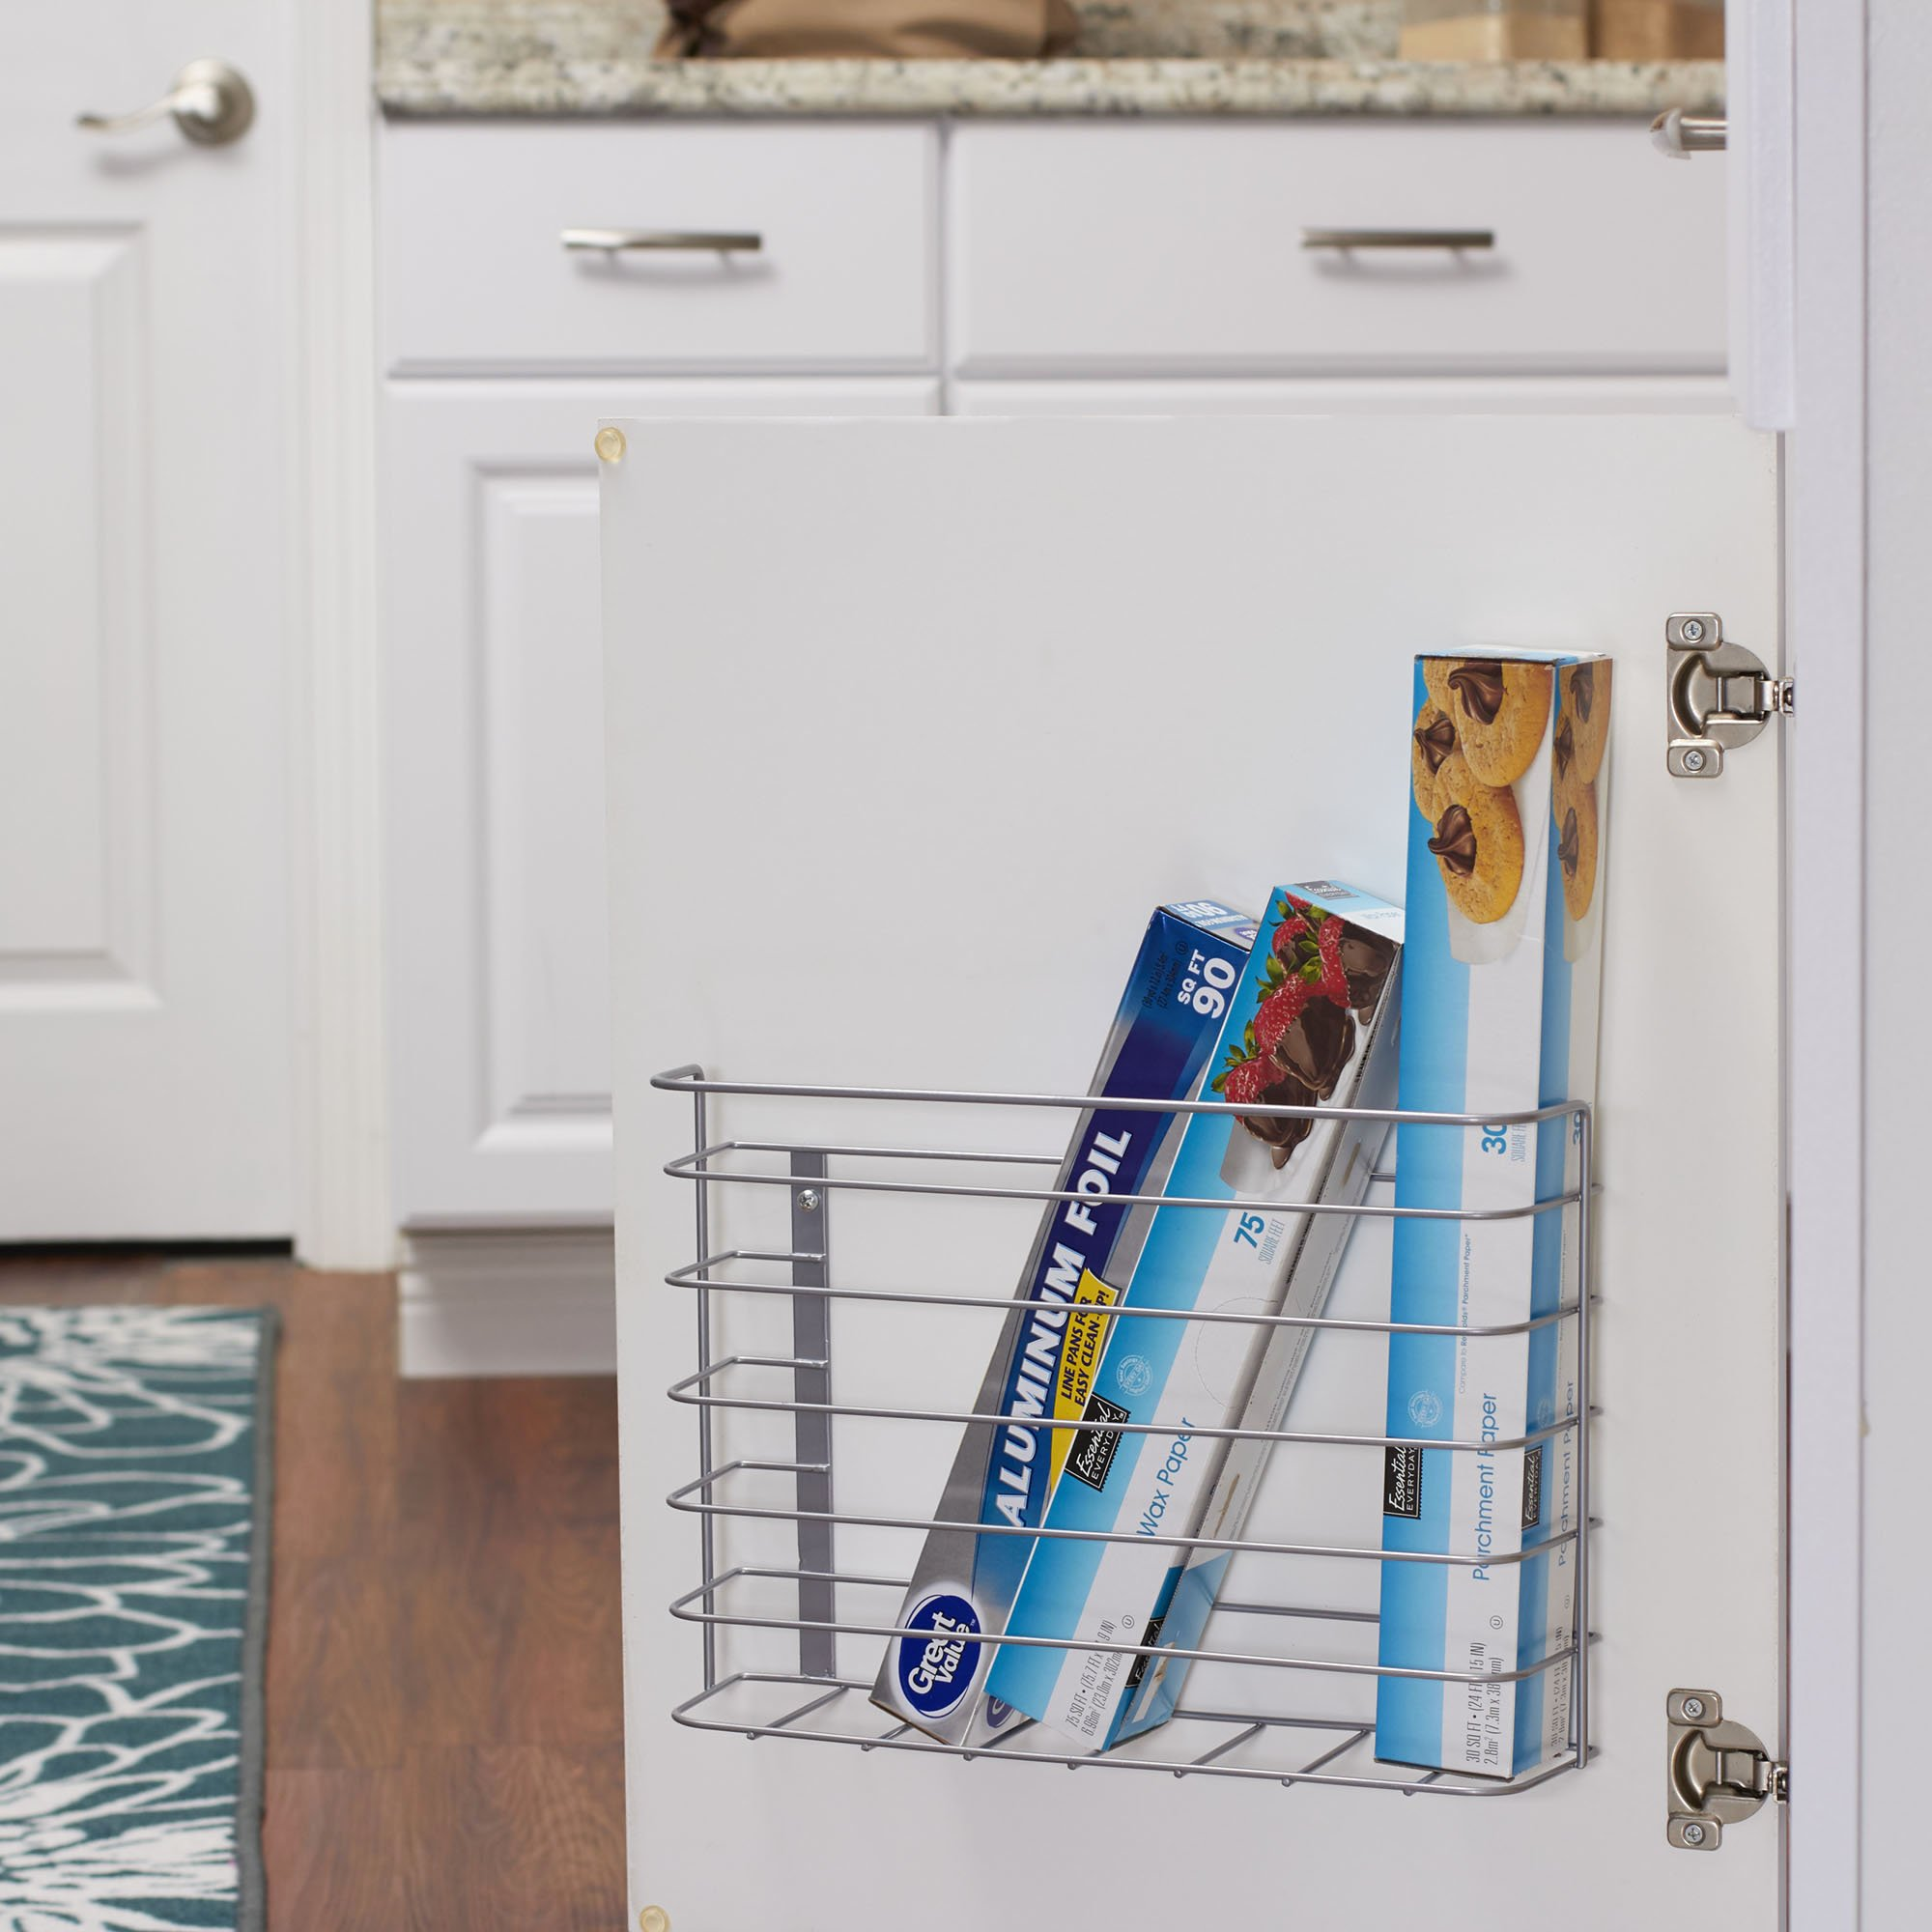 Household Essentials 1229-1 Tall Basket Door Mount Cabinet Organizer | Mounts to Solid Cabinet Doors or Walls by Household Essentials (Image #2)